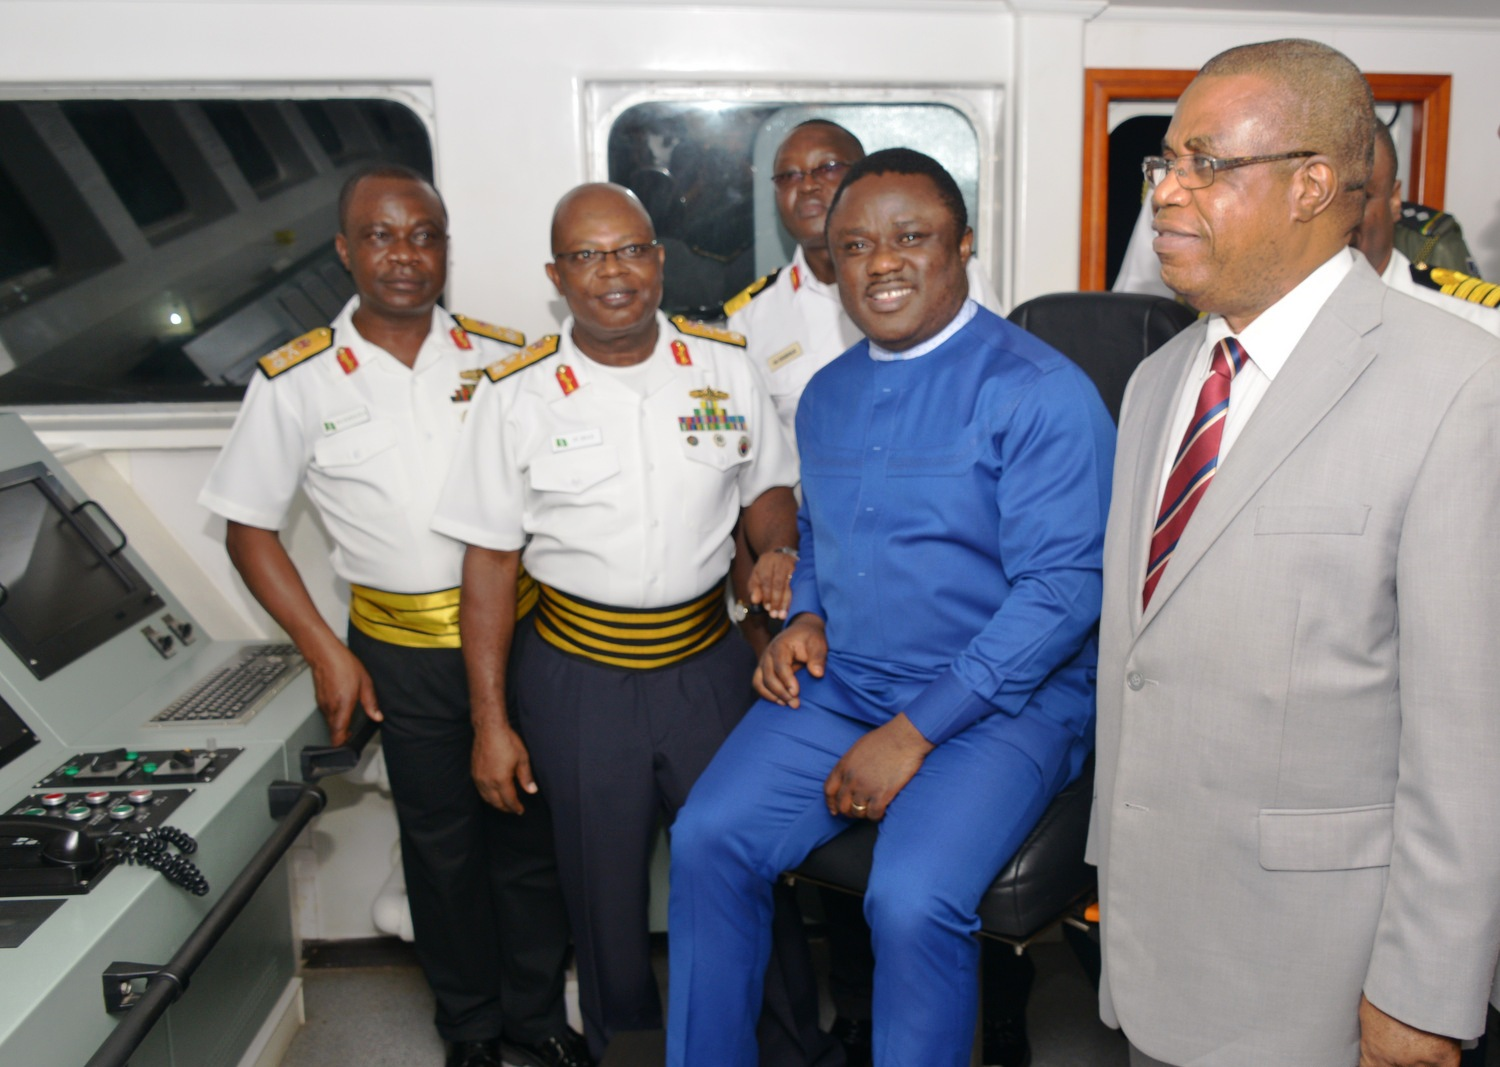 Governor Ayade on board NNS Centenery along with the CNS to his right and the deputy governor to his right